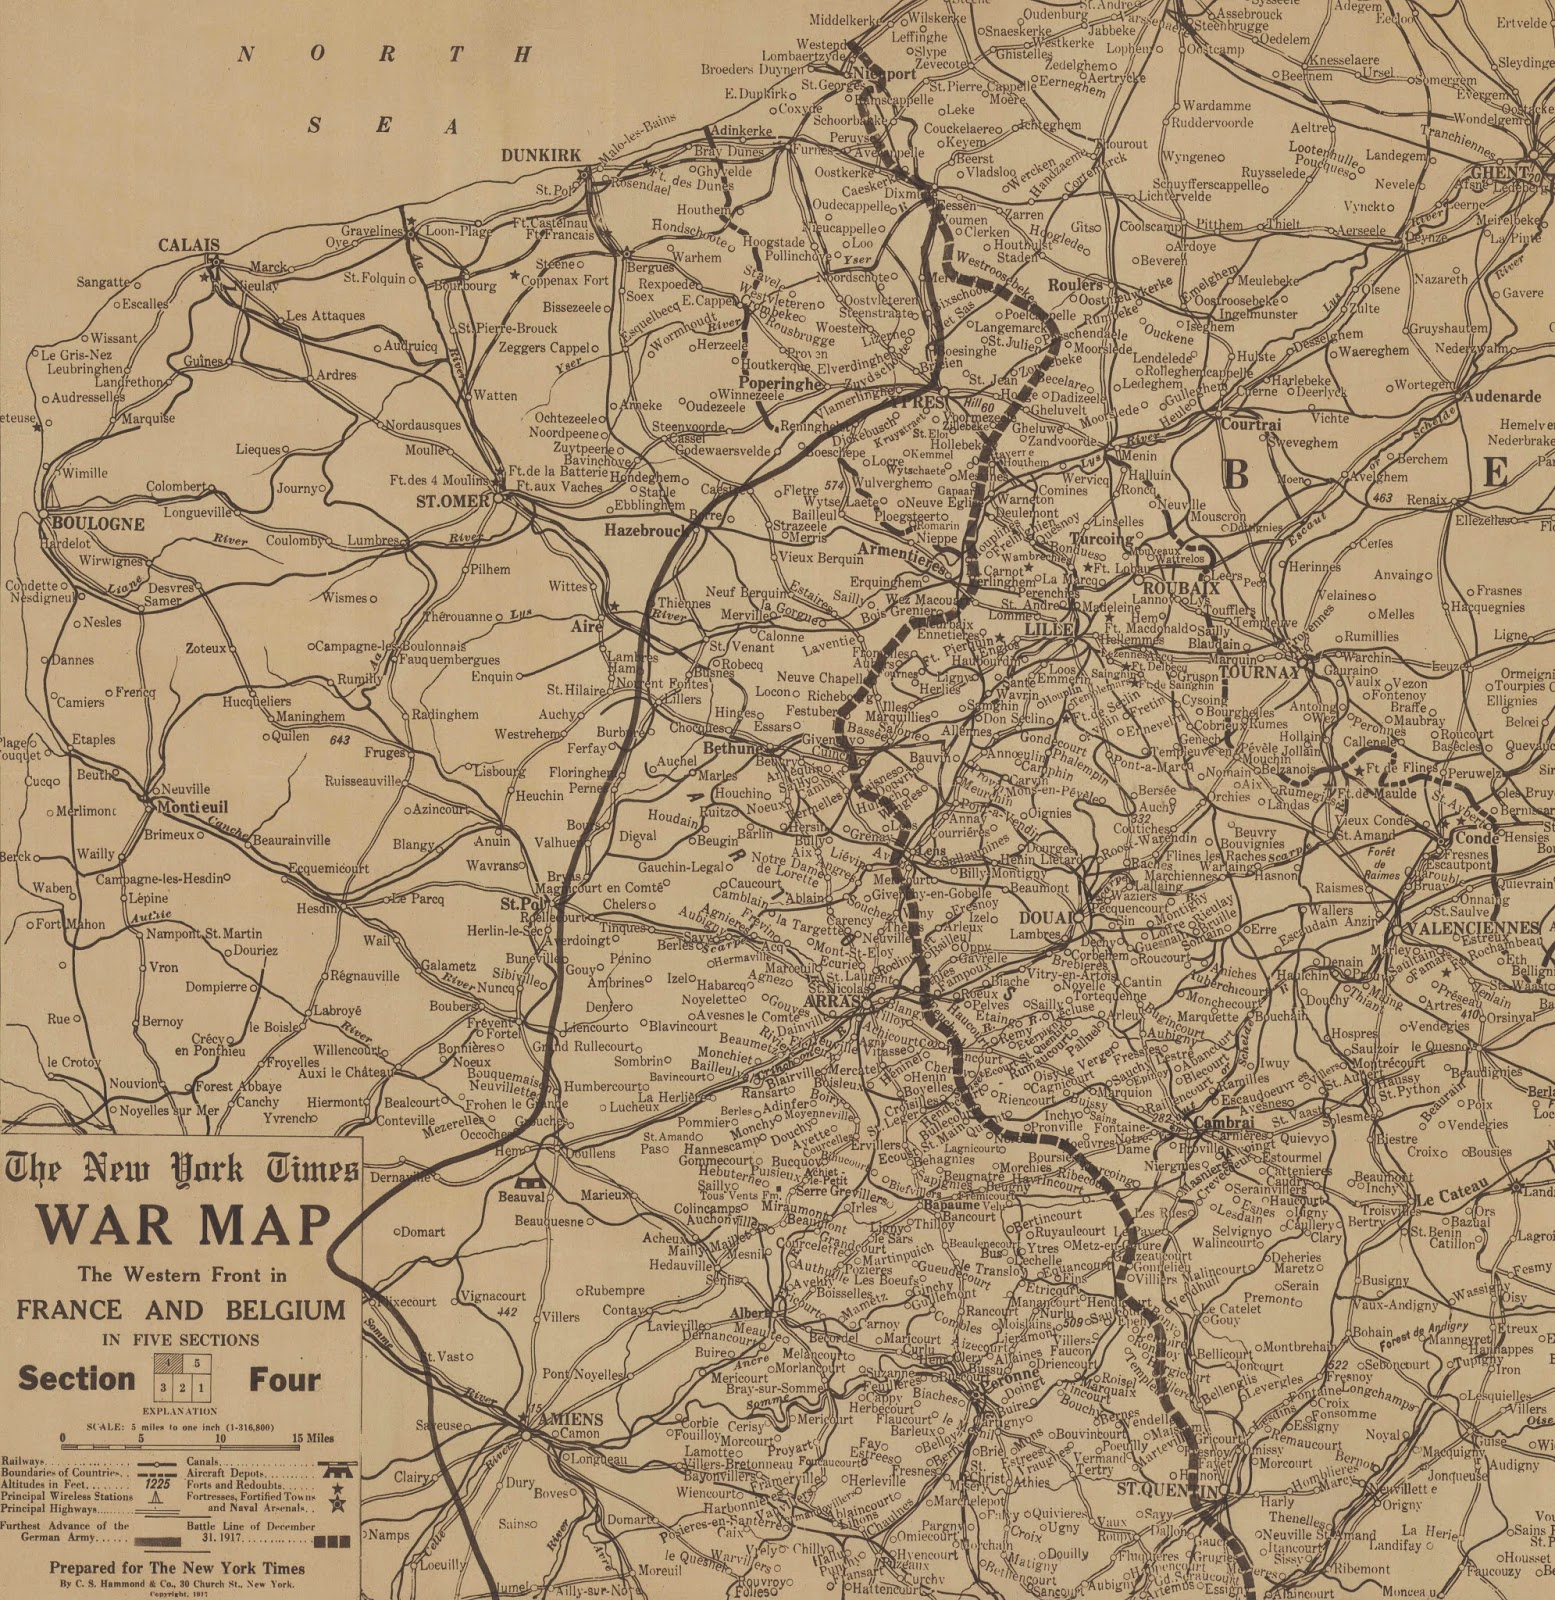 Gis research and map collection 2014 historic world war i maps available online from ball state university libraries gumiabroncs Gallery